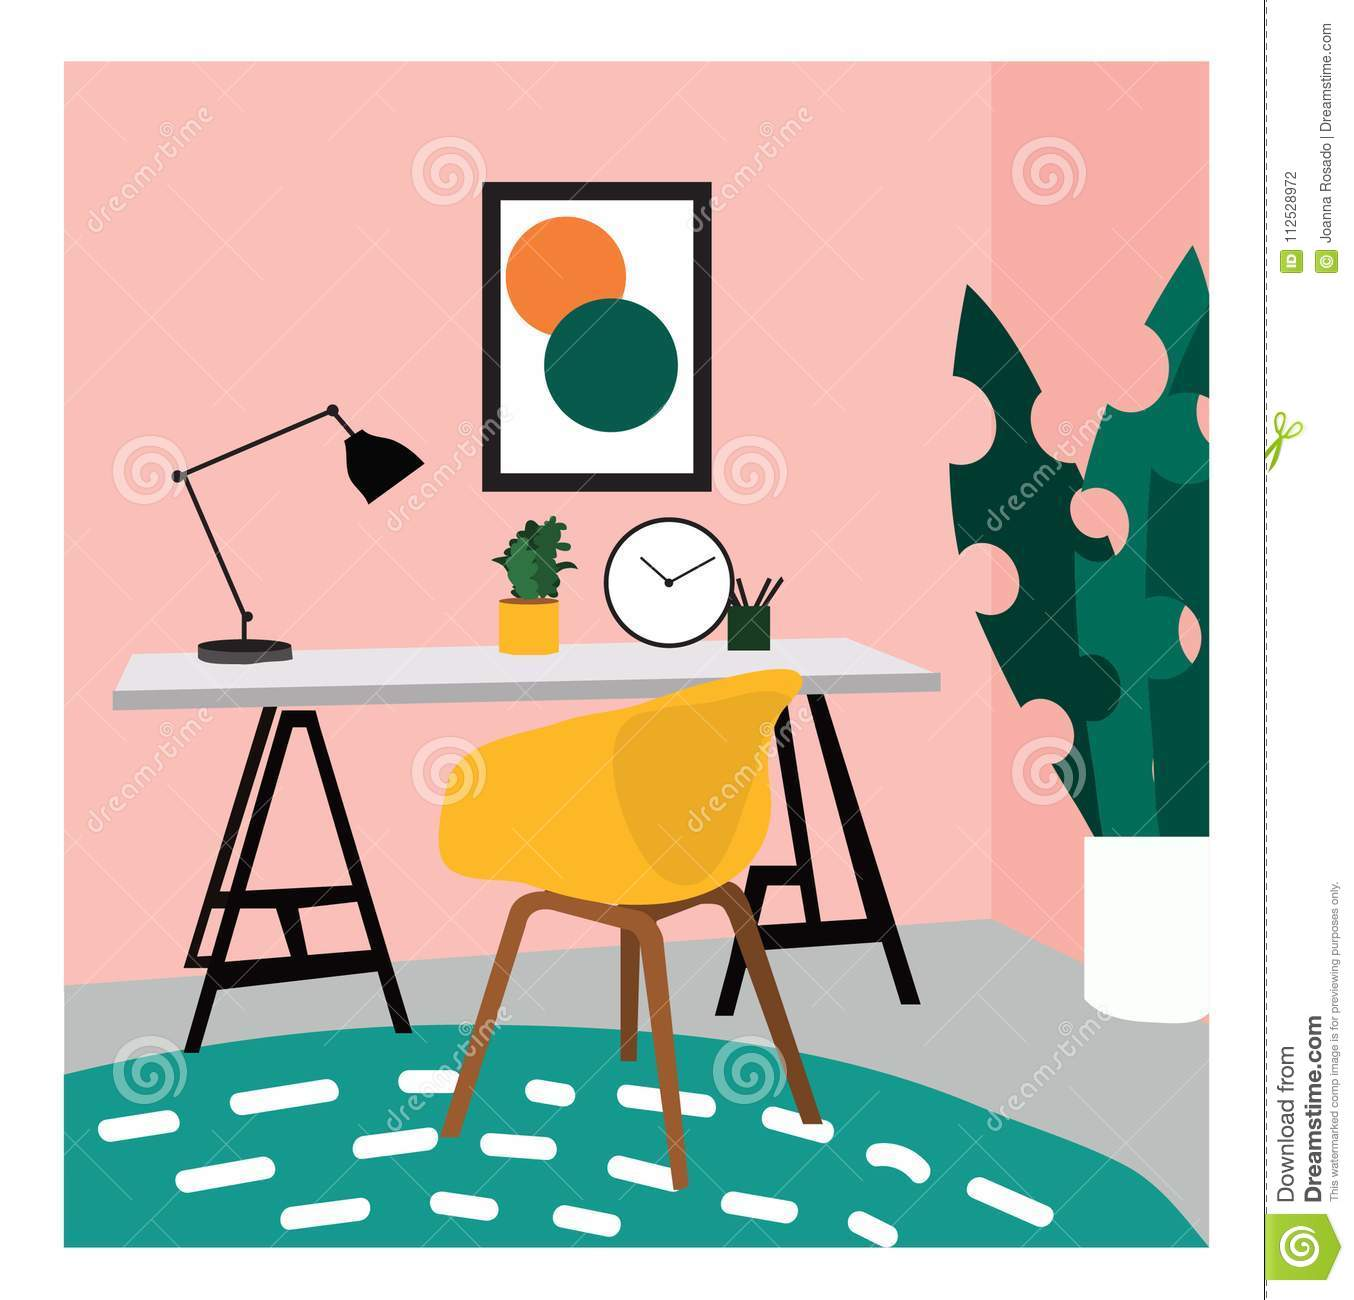 Illustration De Conception Intrieure Vecteur Photo D Tude Bureau Chaise Et Lampe